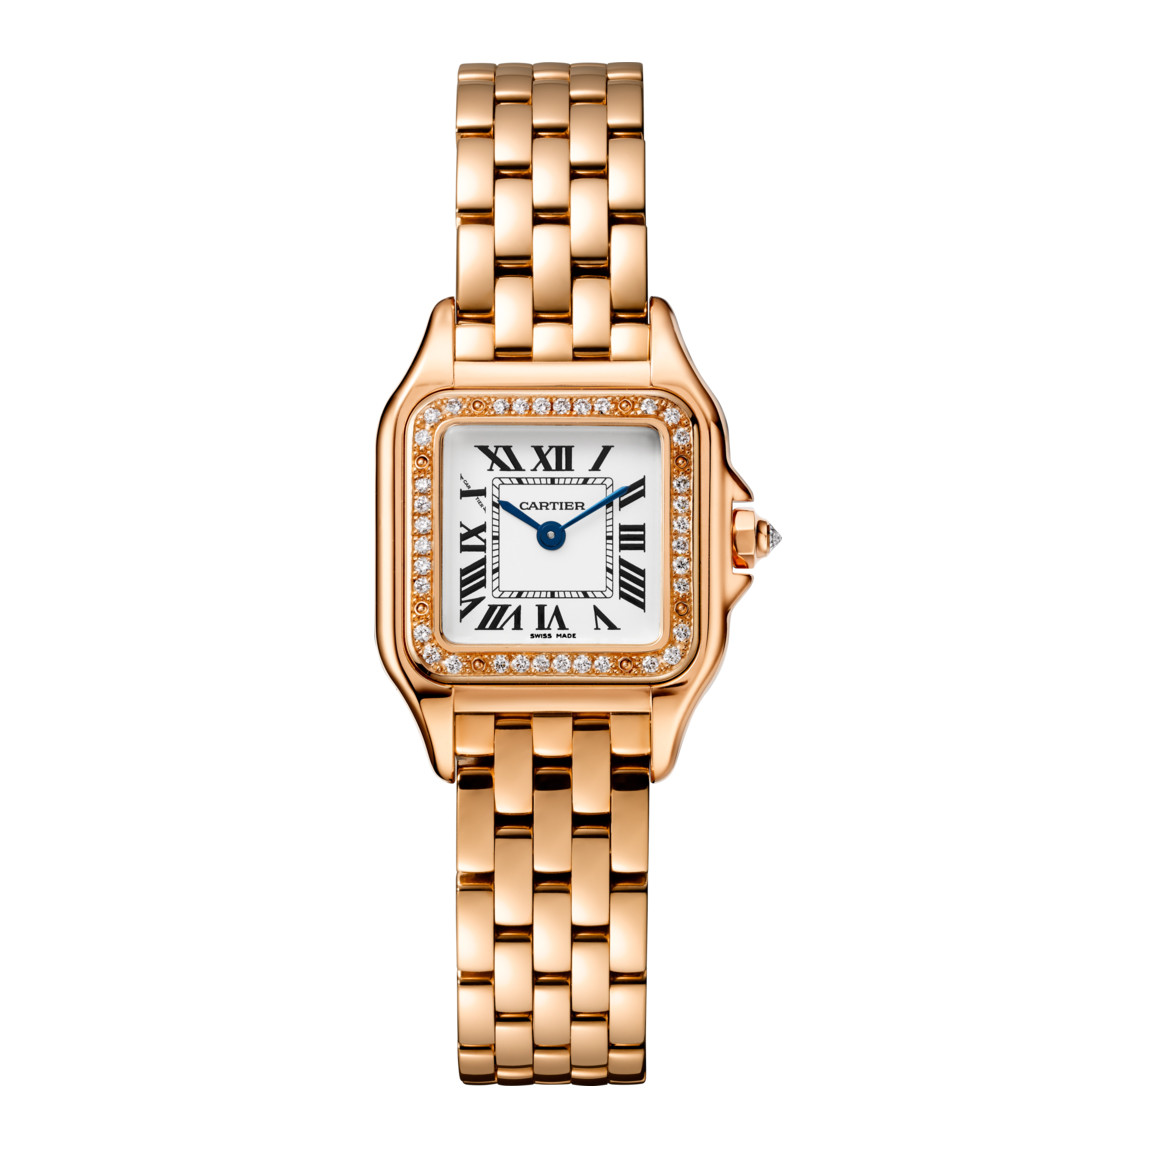 Panthère Small Rose Gold & Diamond (WJPN0008)